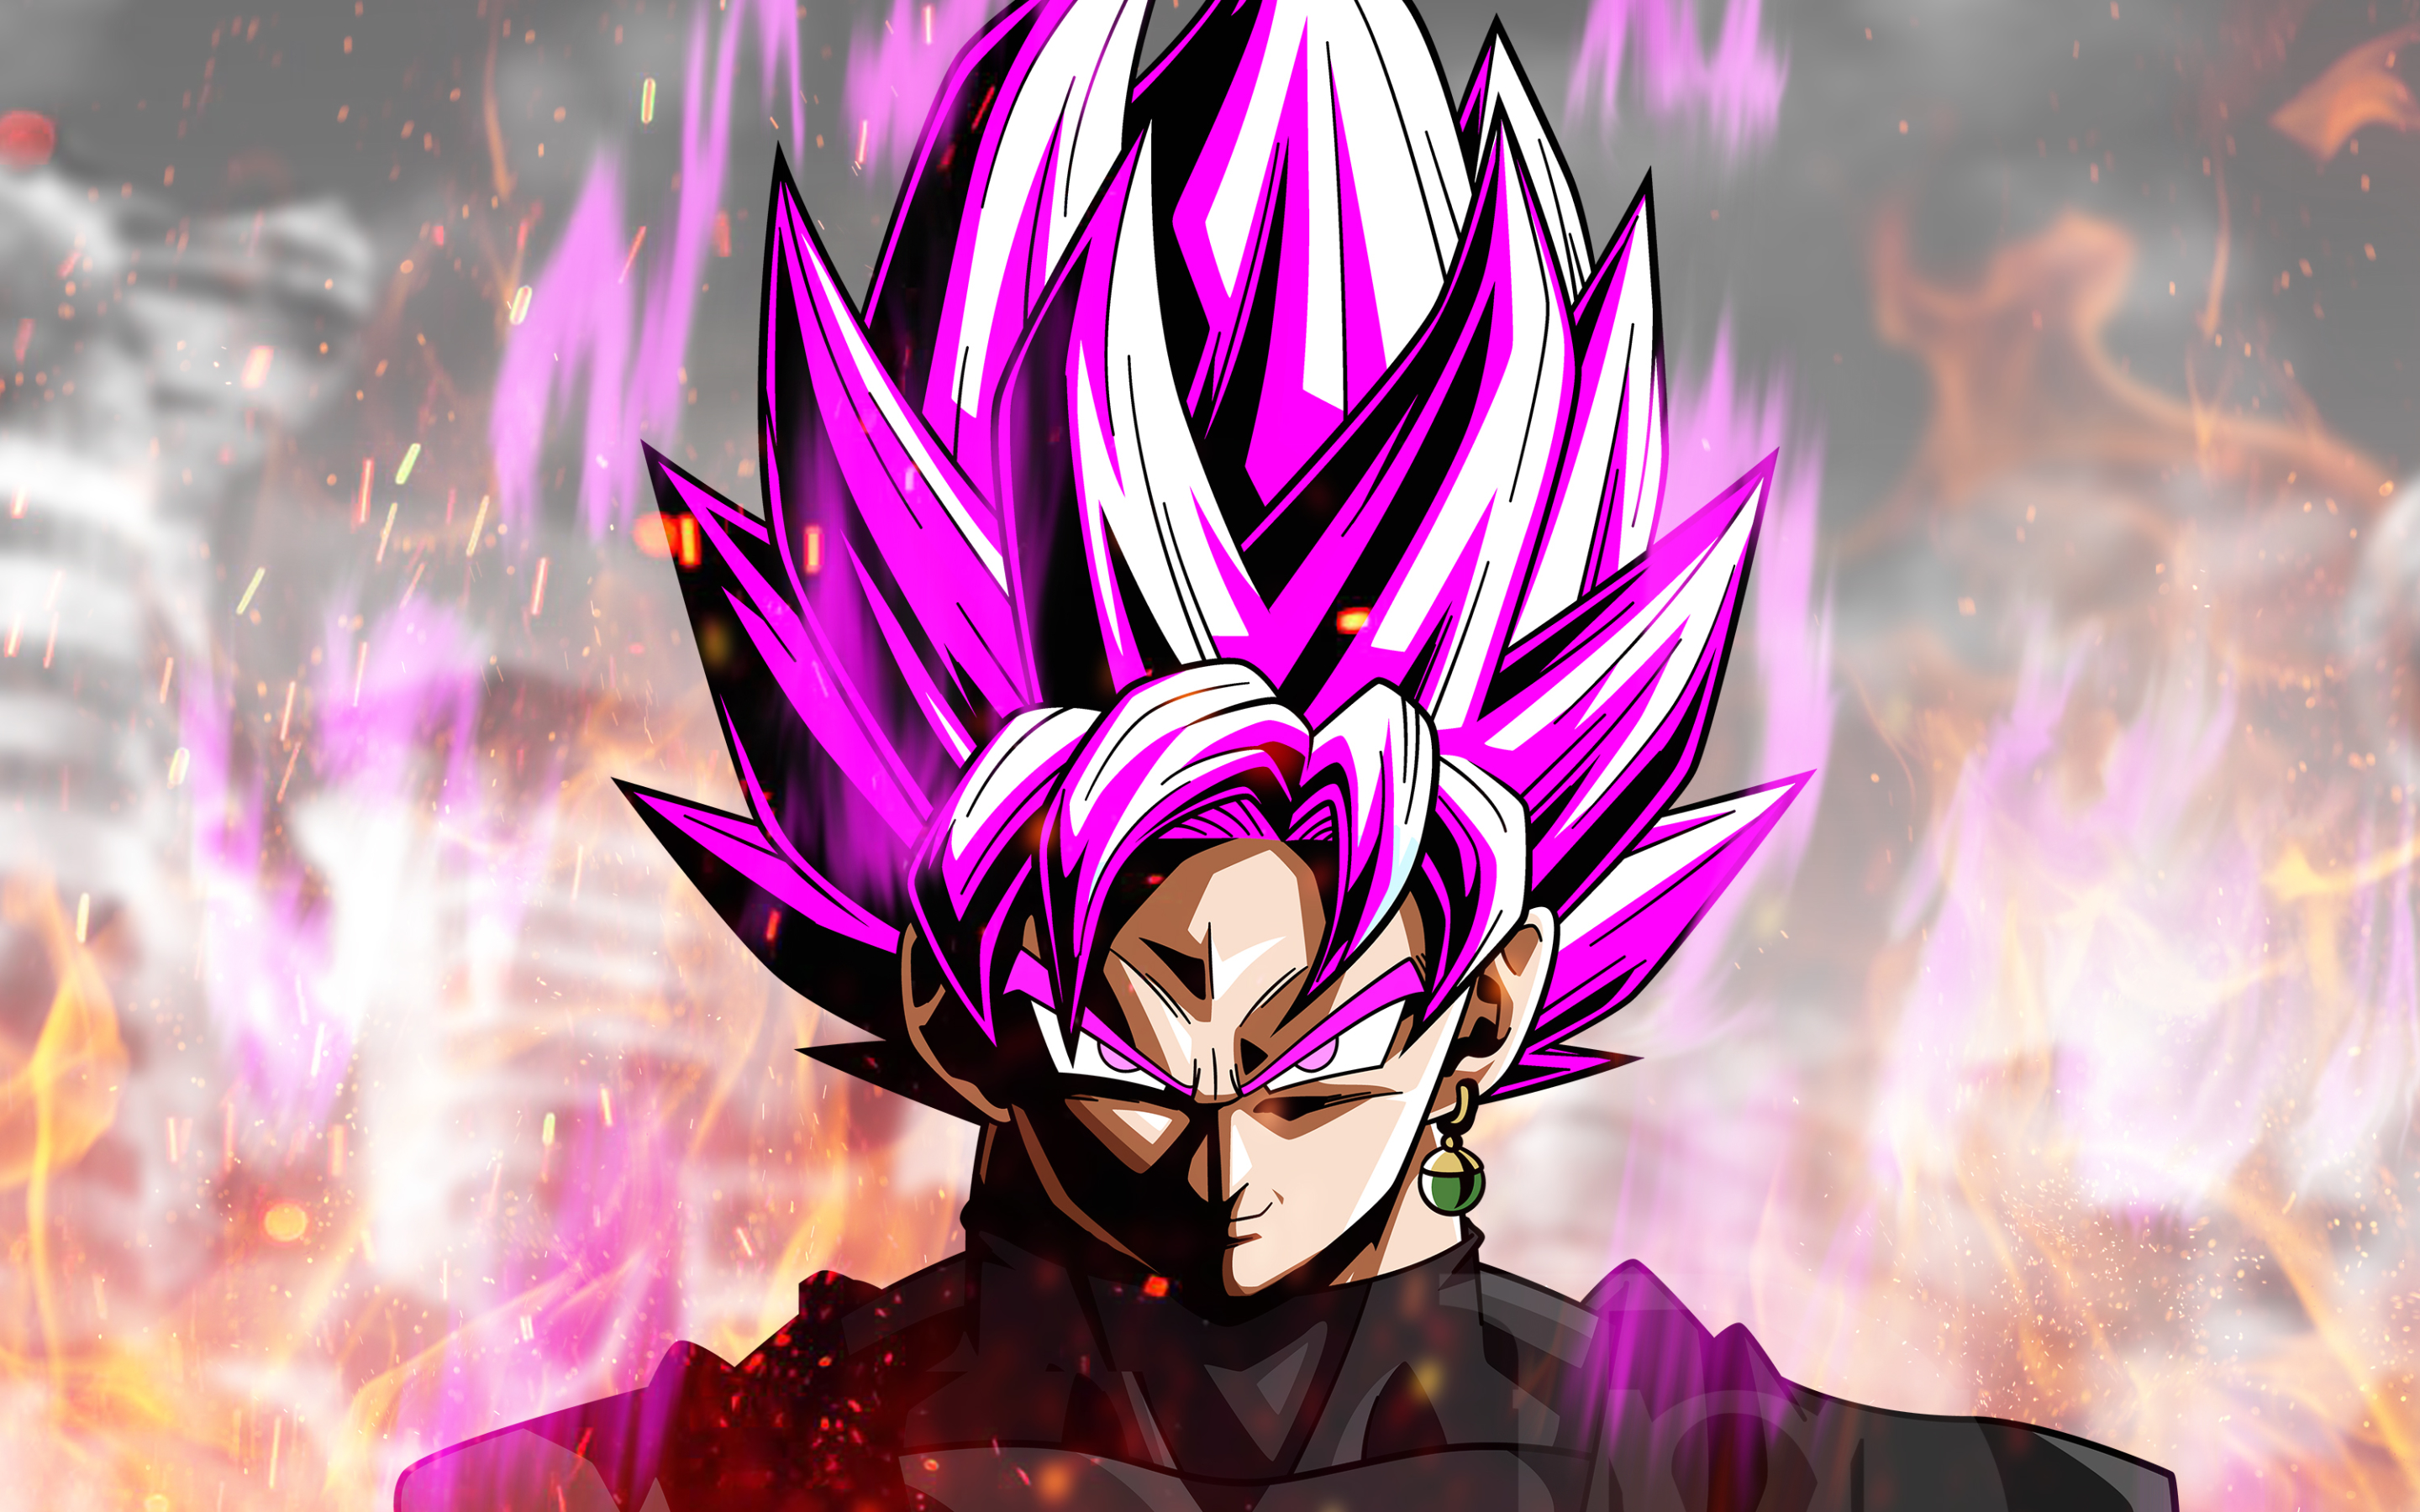 Black Goku Fire Flames Close Up Dbs Super Saiyan Black Goku Super Saiyan Rose 2880x1800 Wallpaper Teahub Io